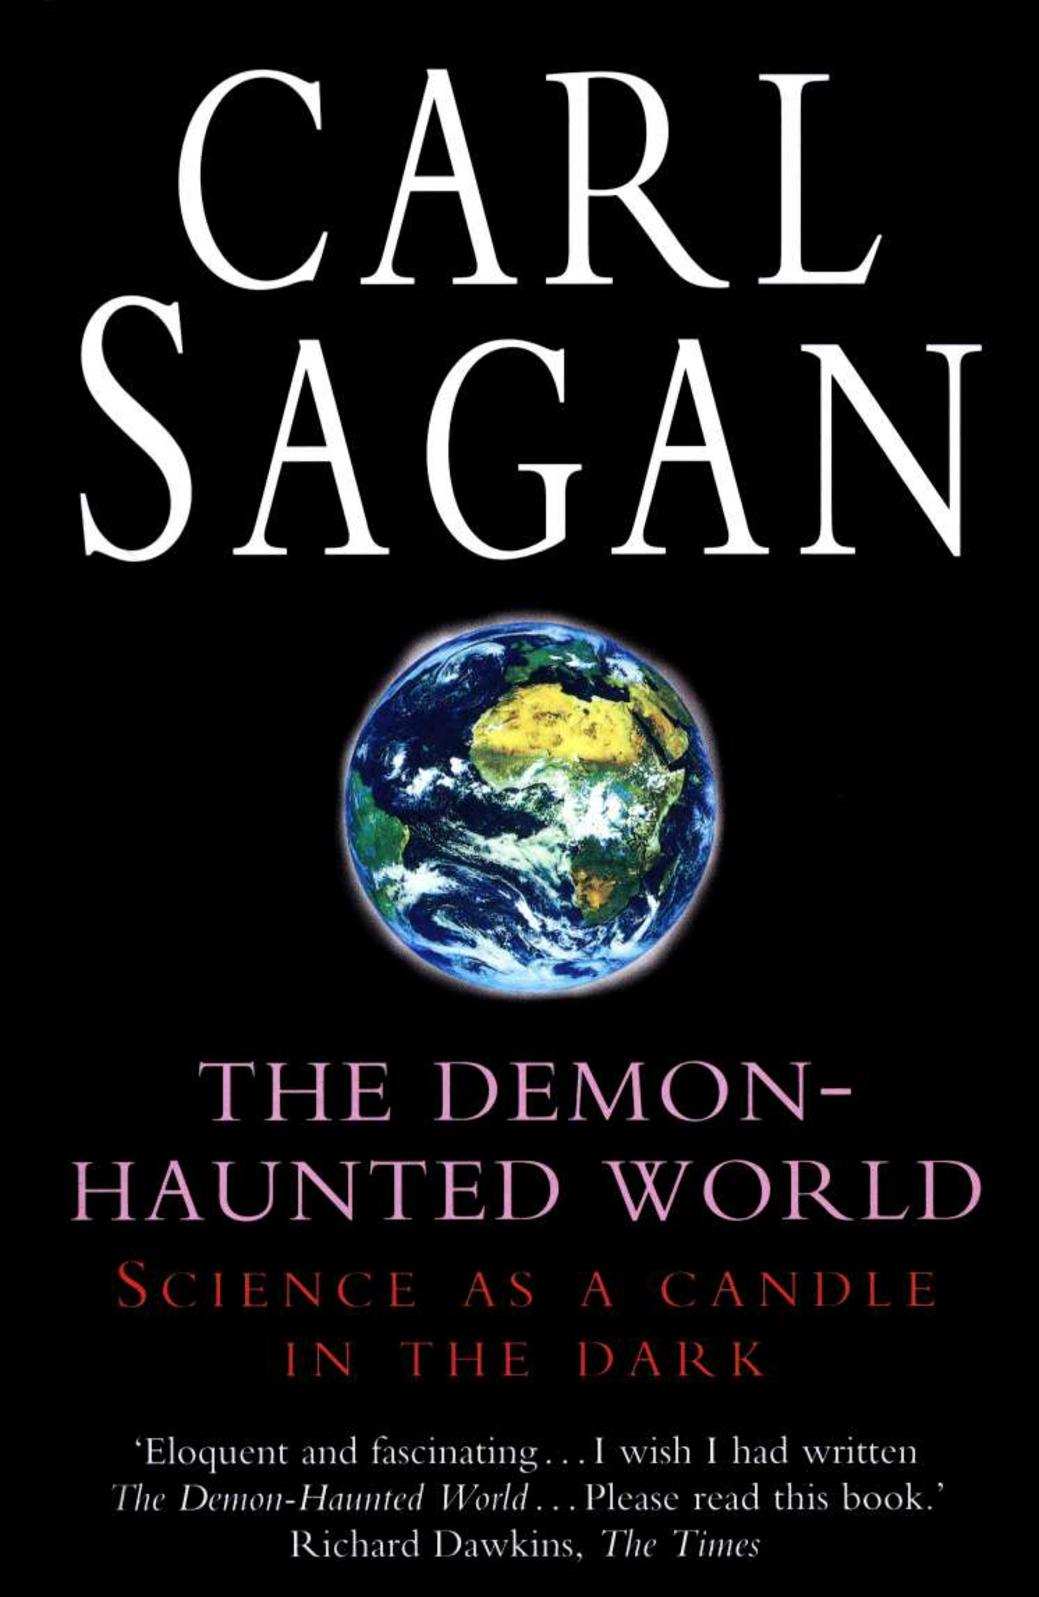 the demon haunted world carl sagan Question 1: our high school chemistry teacher requires all his students to read demon haunted world by carl sagan it has already caused my son to start questioning everything we hold dear, and last sunday he refused to go to church i have already contacted the chemistry teacher, but he is adamant.